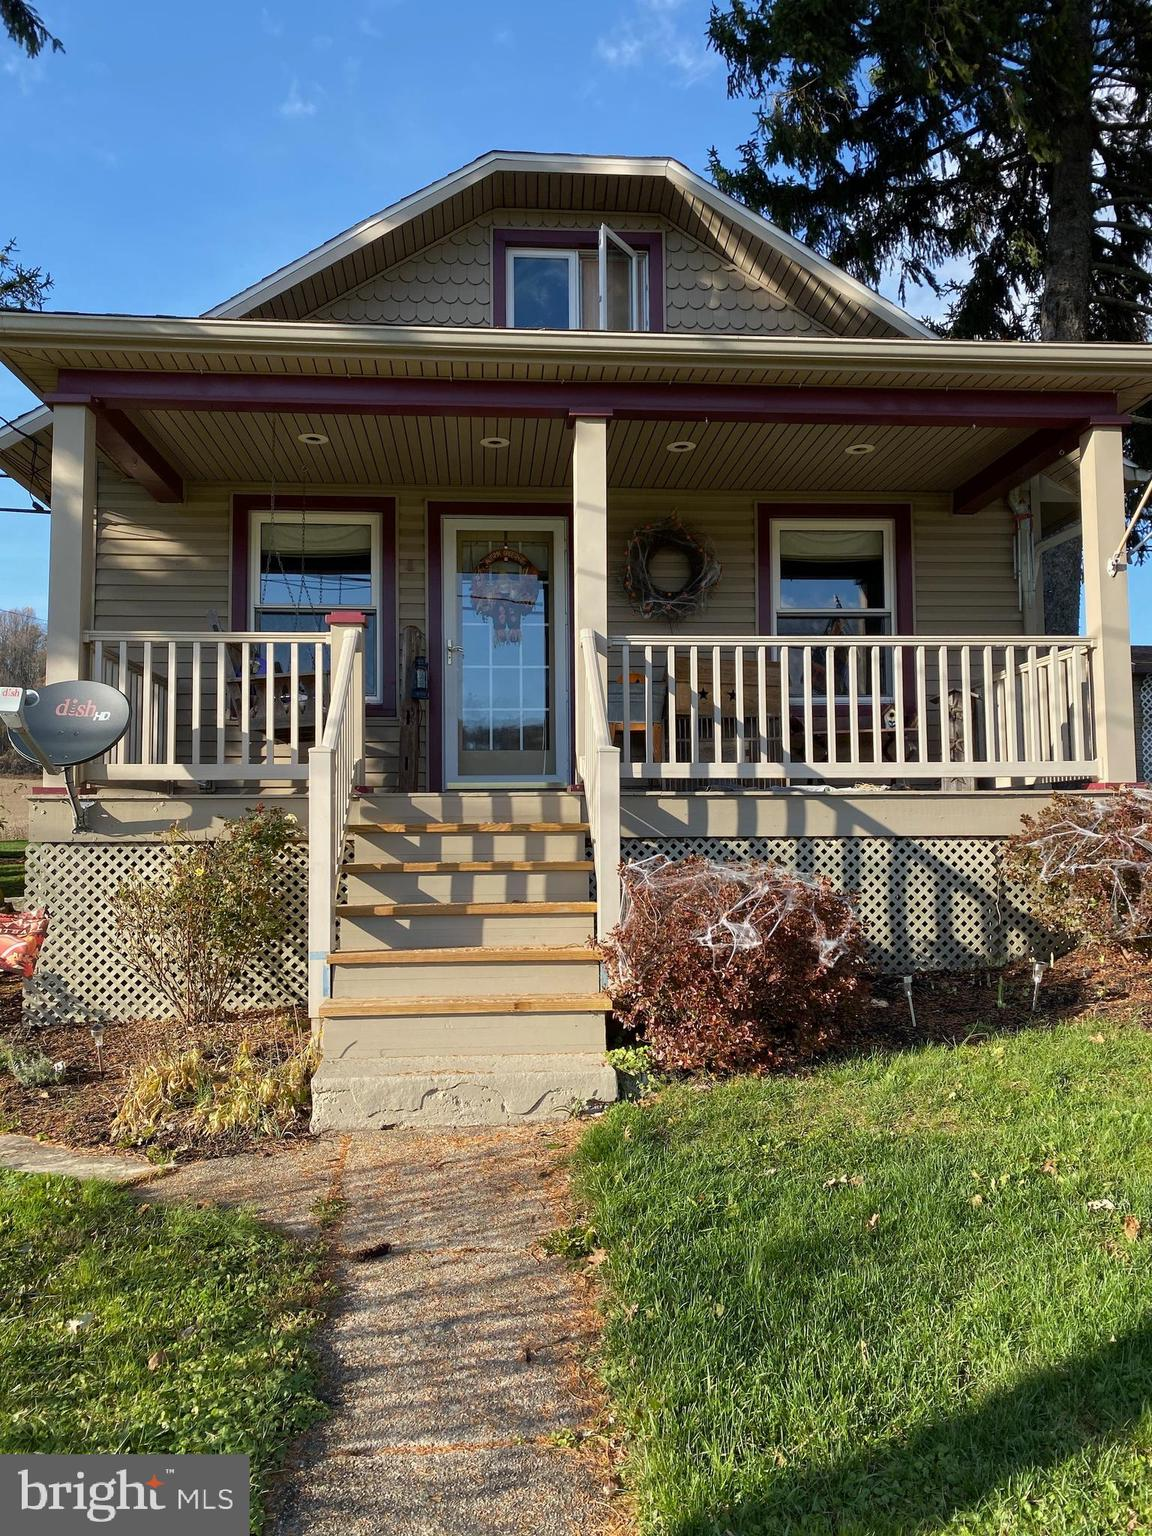 555 SHERMANS VALLEY ROAD, NEW BLOOMFIELD, PA 17068